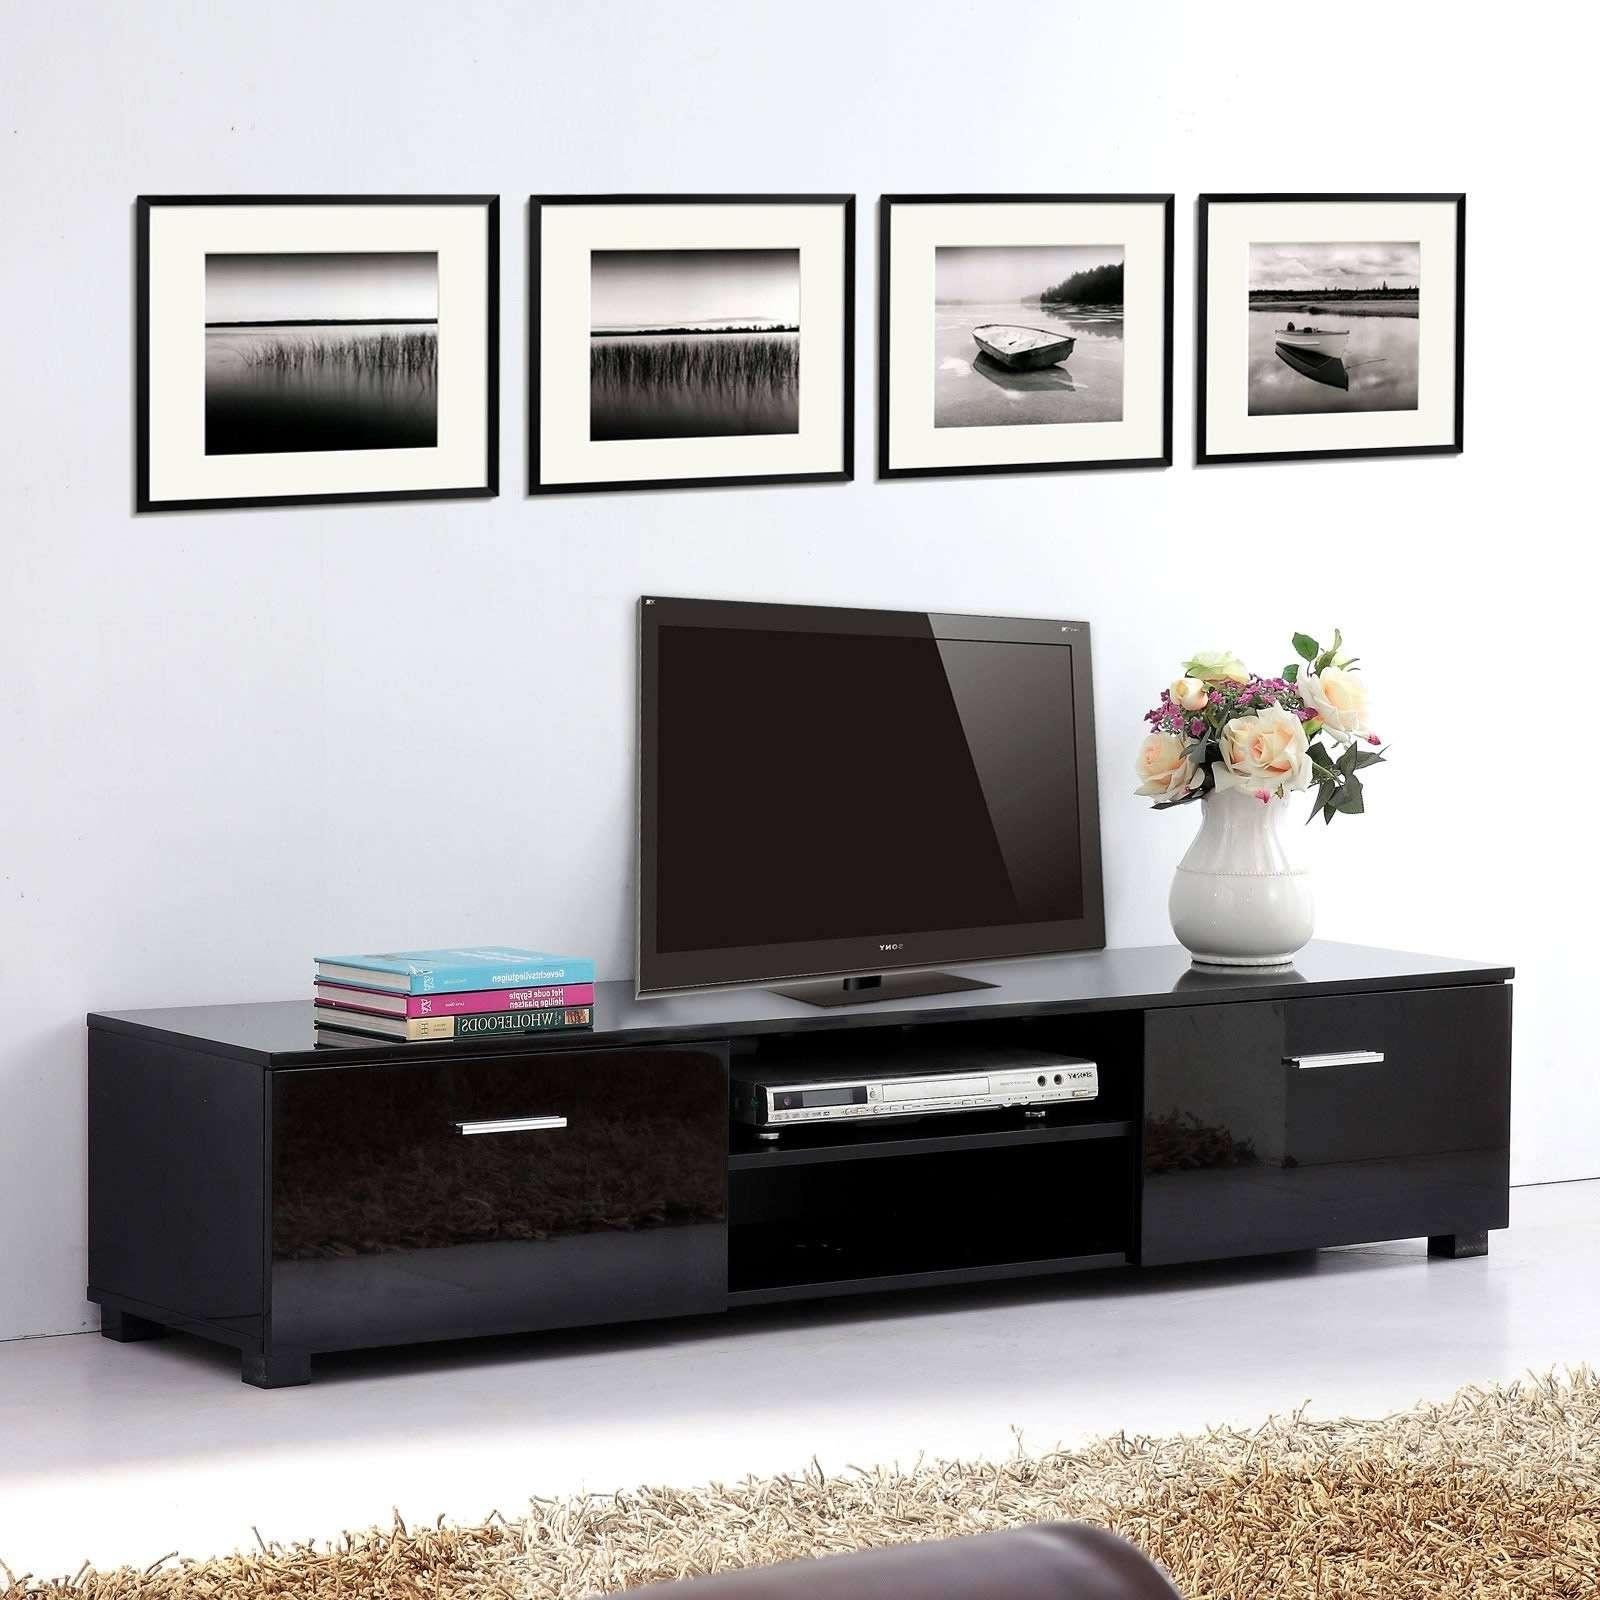 Tv Stand : Tv Stands Amazon Com Long Black Stand 61Jftzwmvcl Inside Long Tv Cabinets Furniture (View 16 of 20)